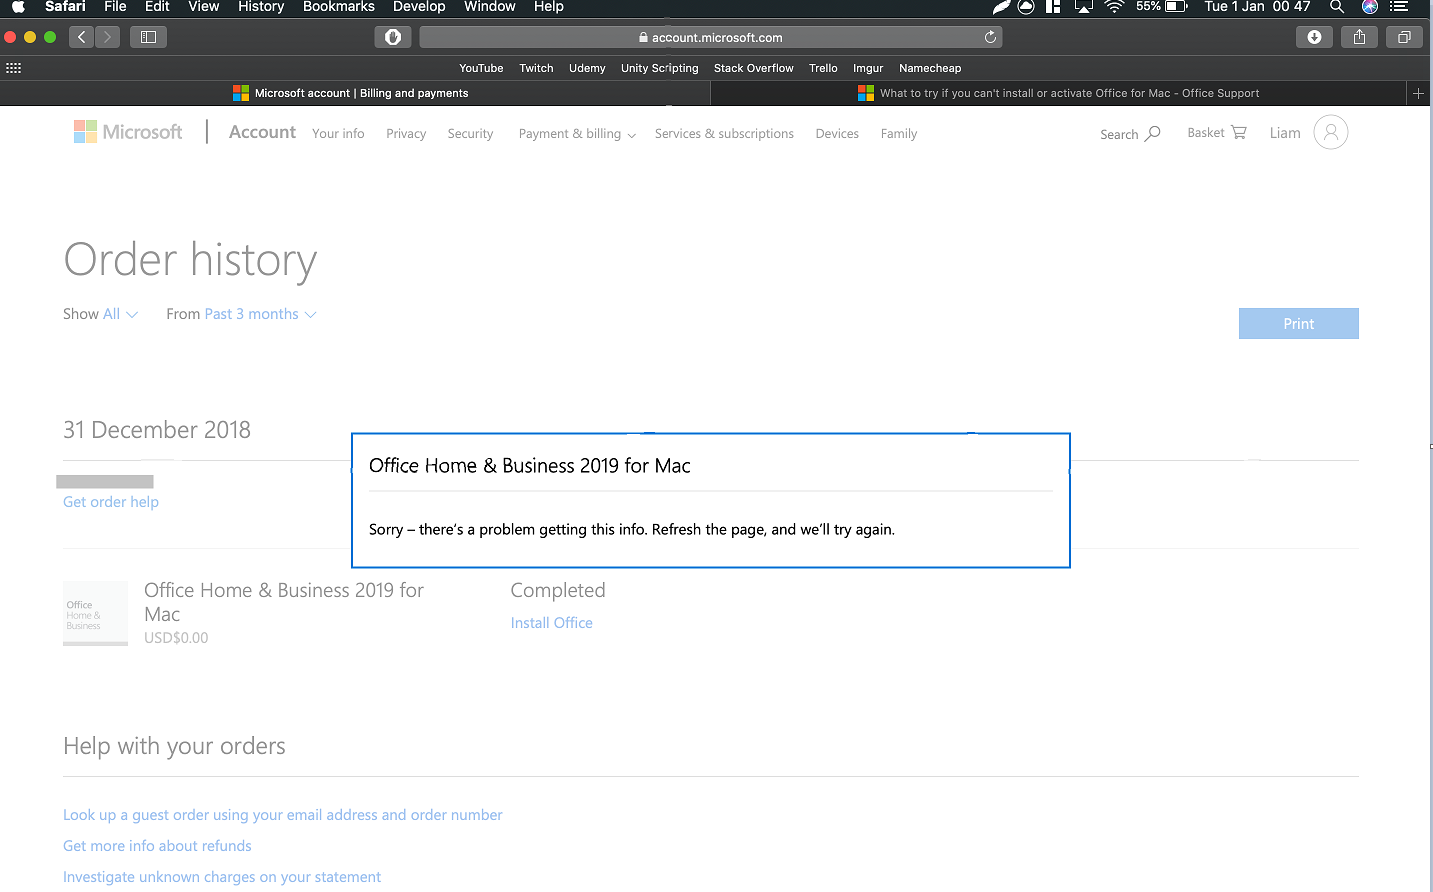 Cannot Install New office 2019 for Mac??? - Microsoft Community